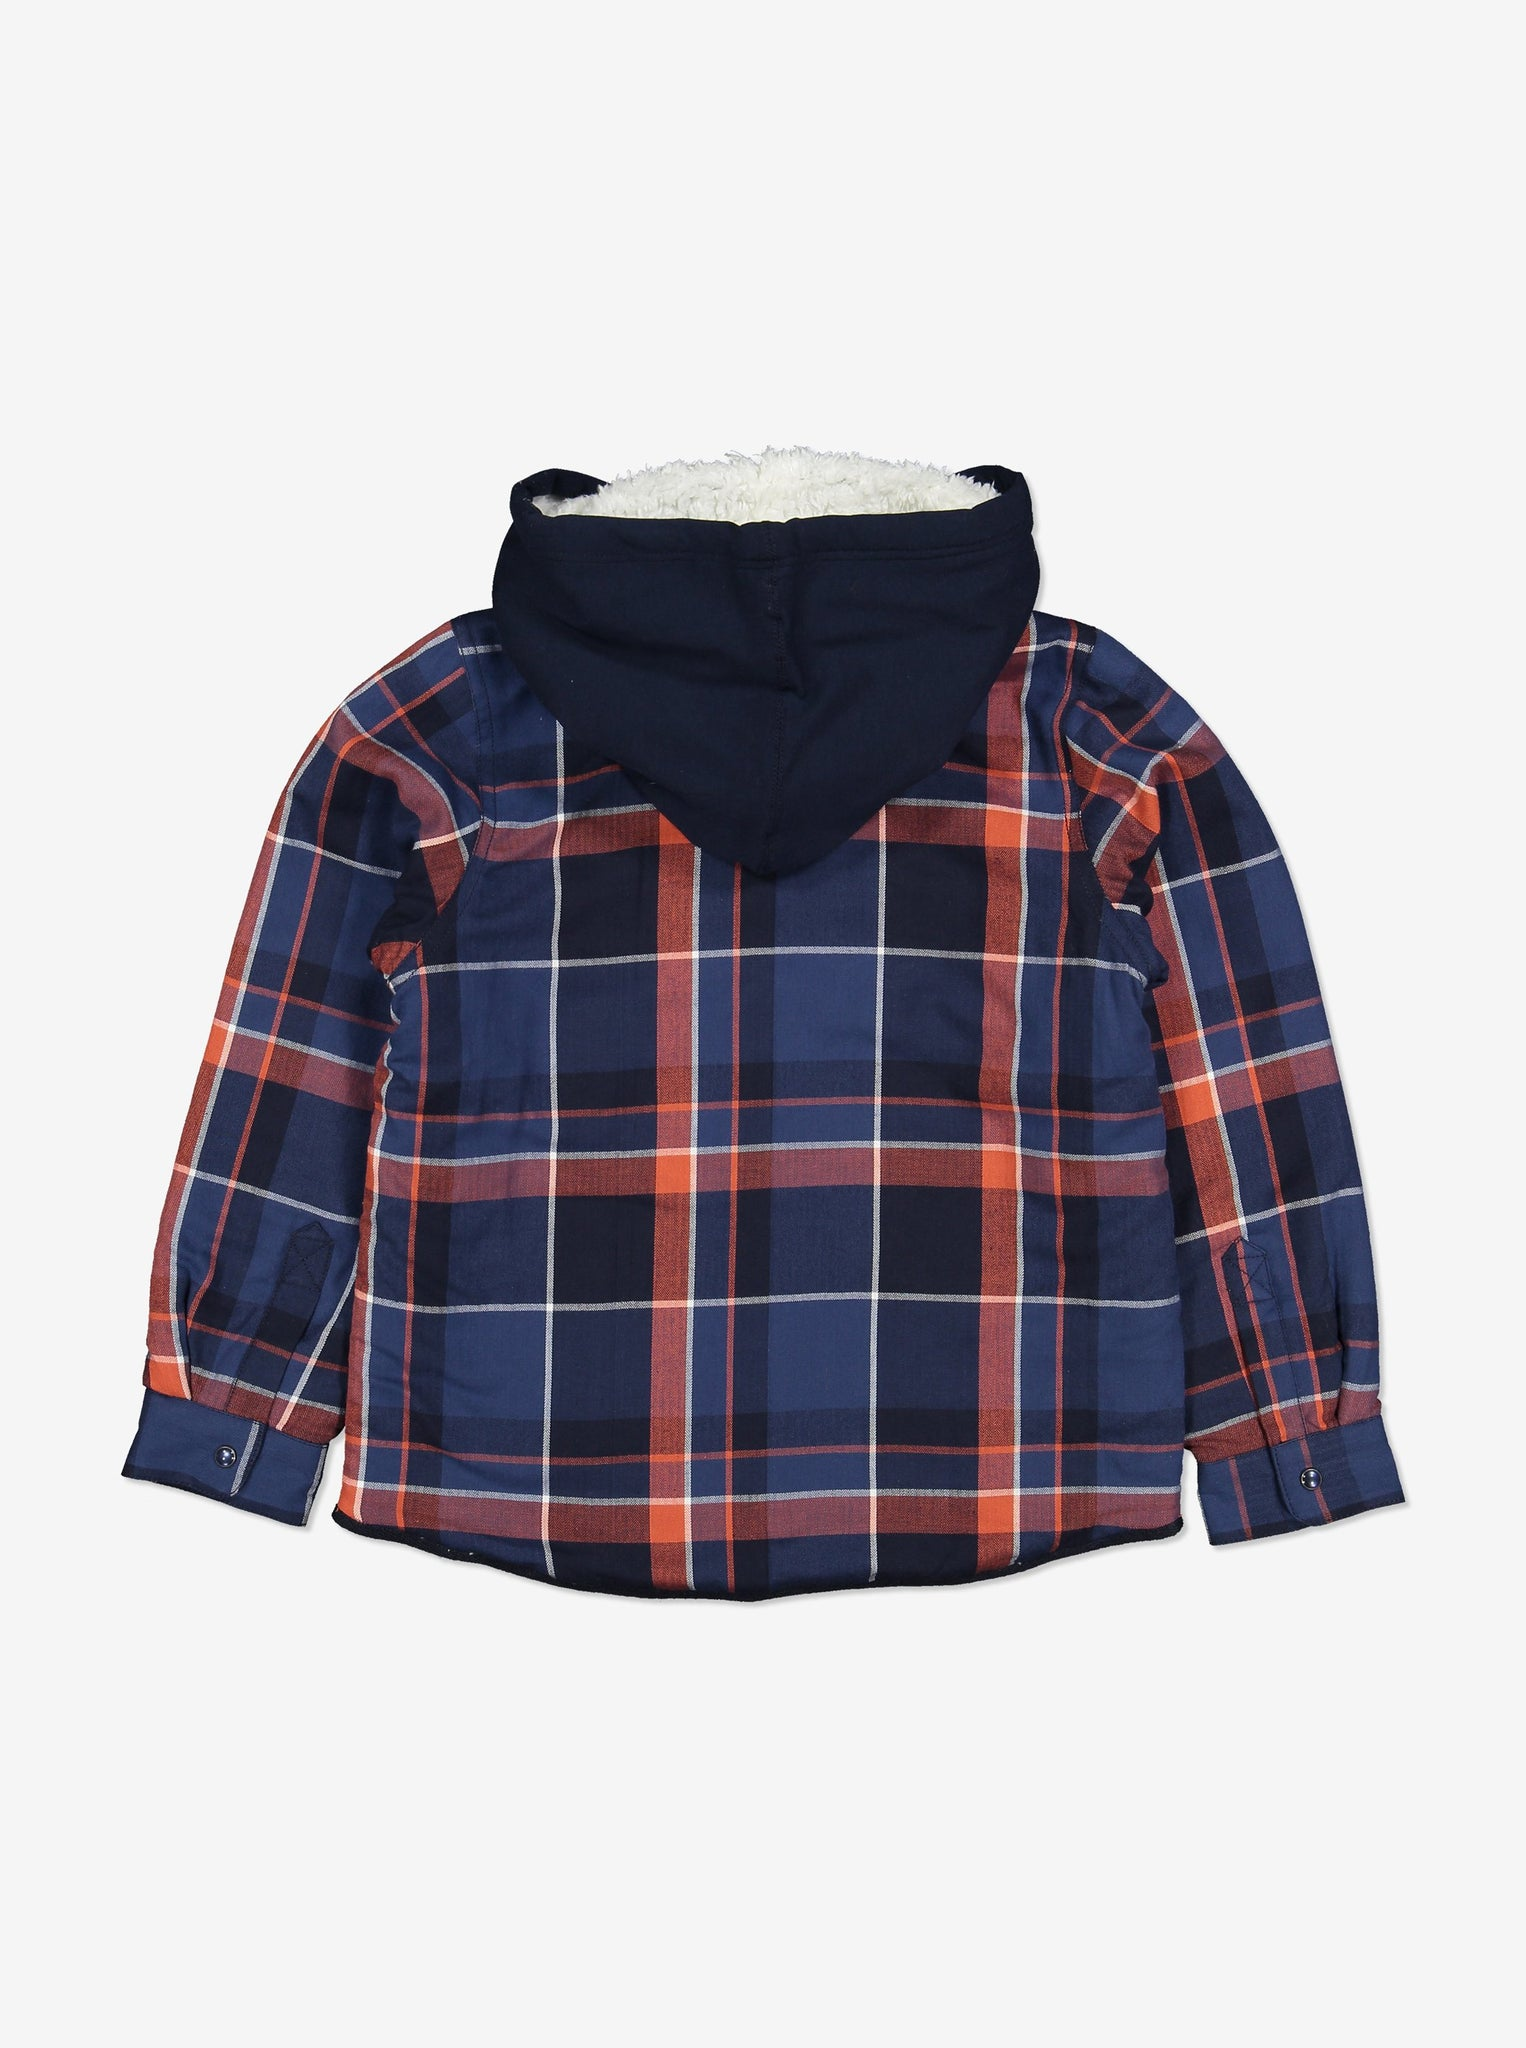 Fleece Lined Kids Shirt-Unisex-1-12y-Navy